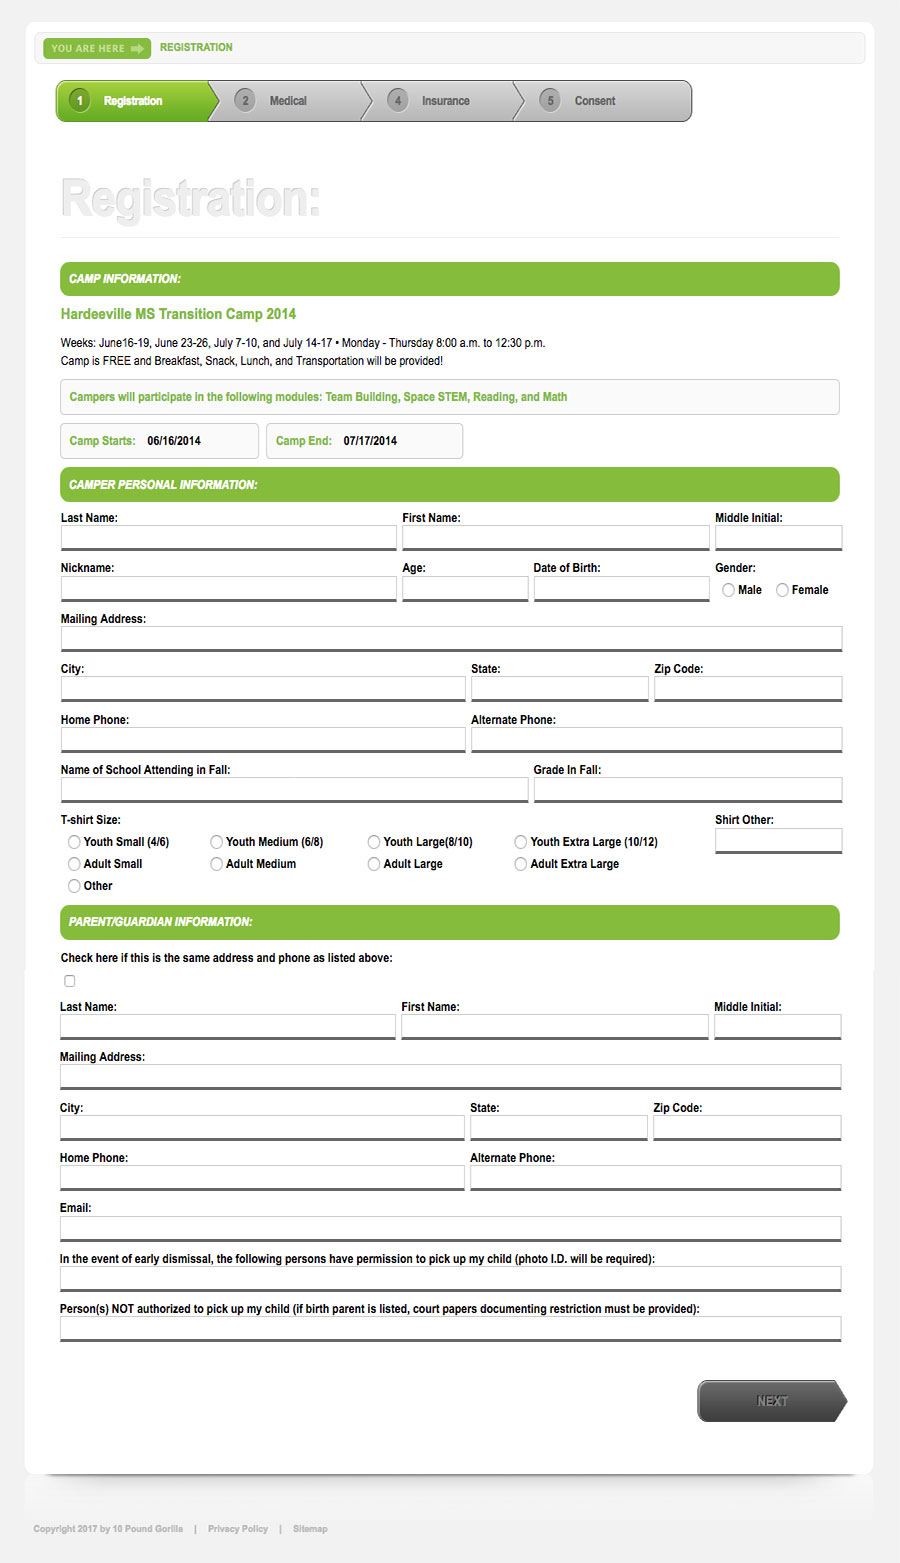 PCG Registration Form Screenshot